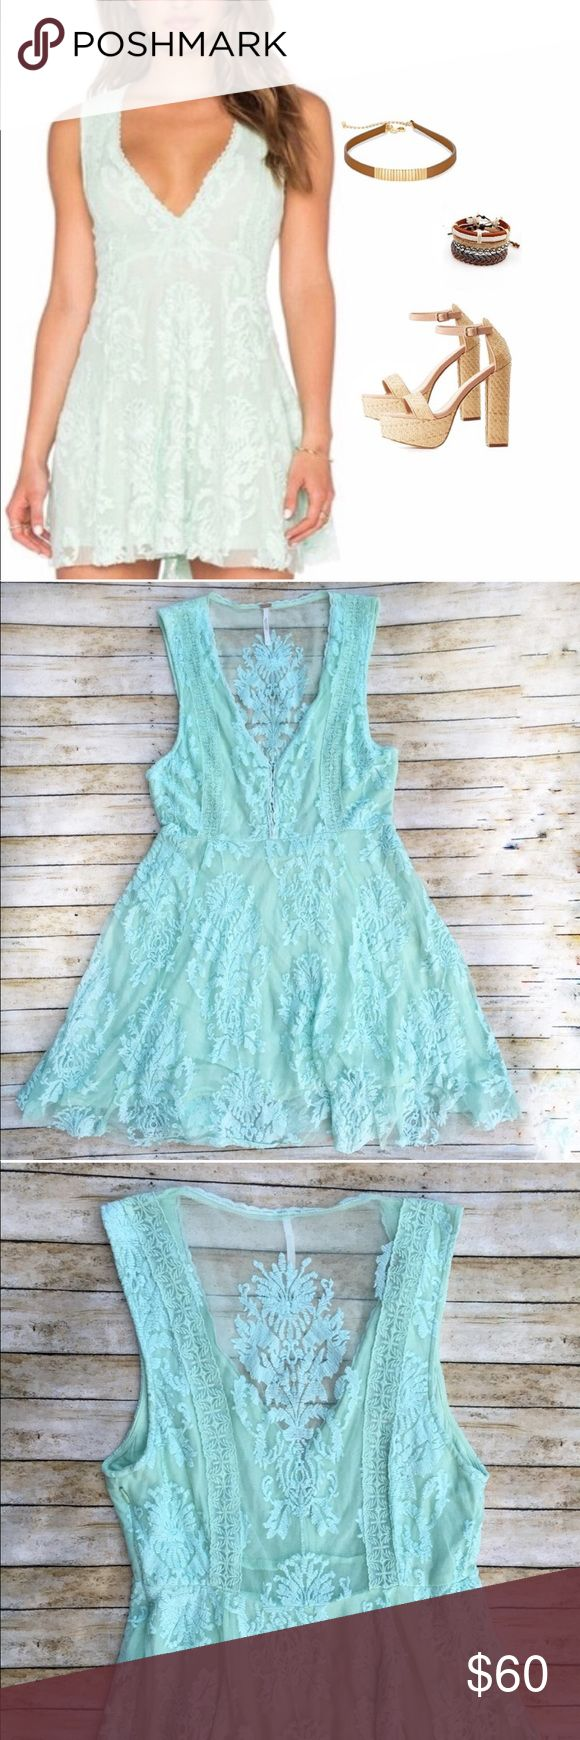 Free People Reign Over Me Mint Lace Dress Free People Reign Over Me Mint Lace Dress. Size 6 Free People Dresses